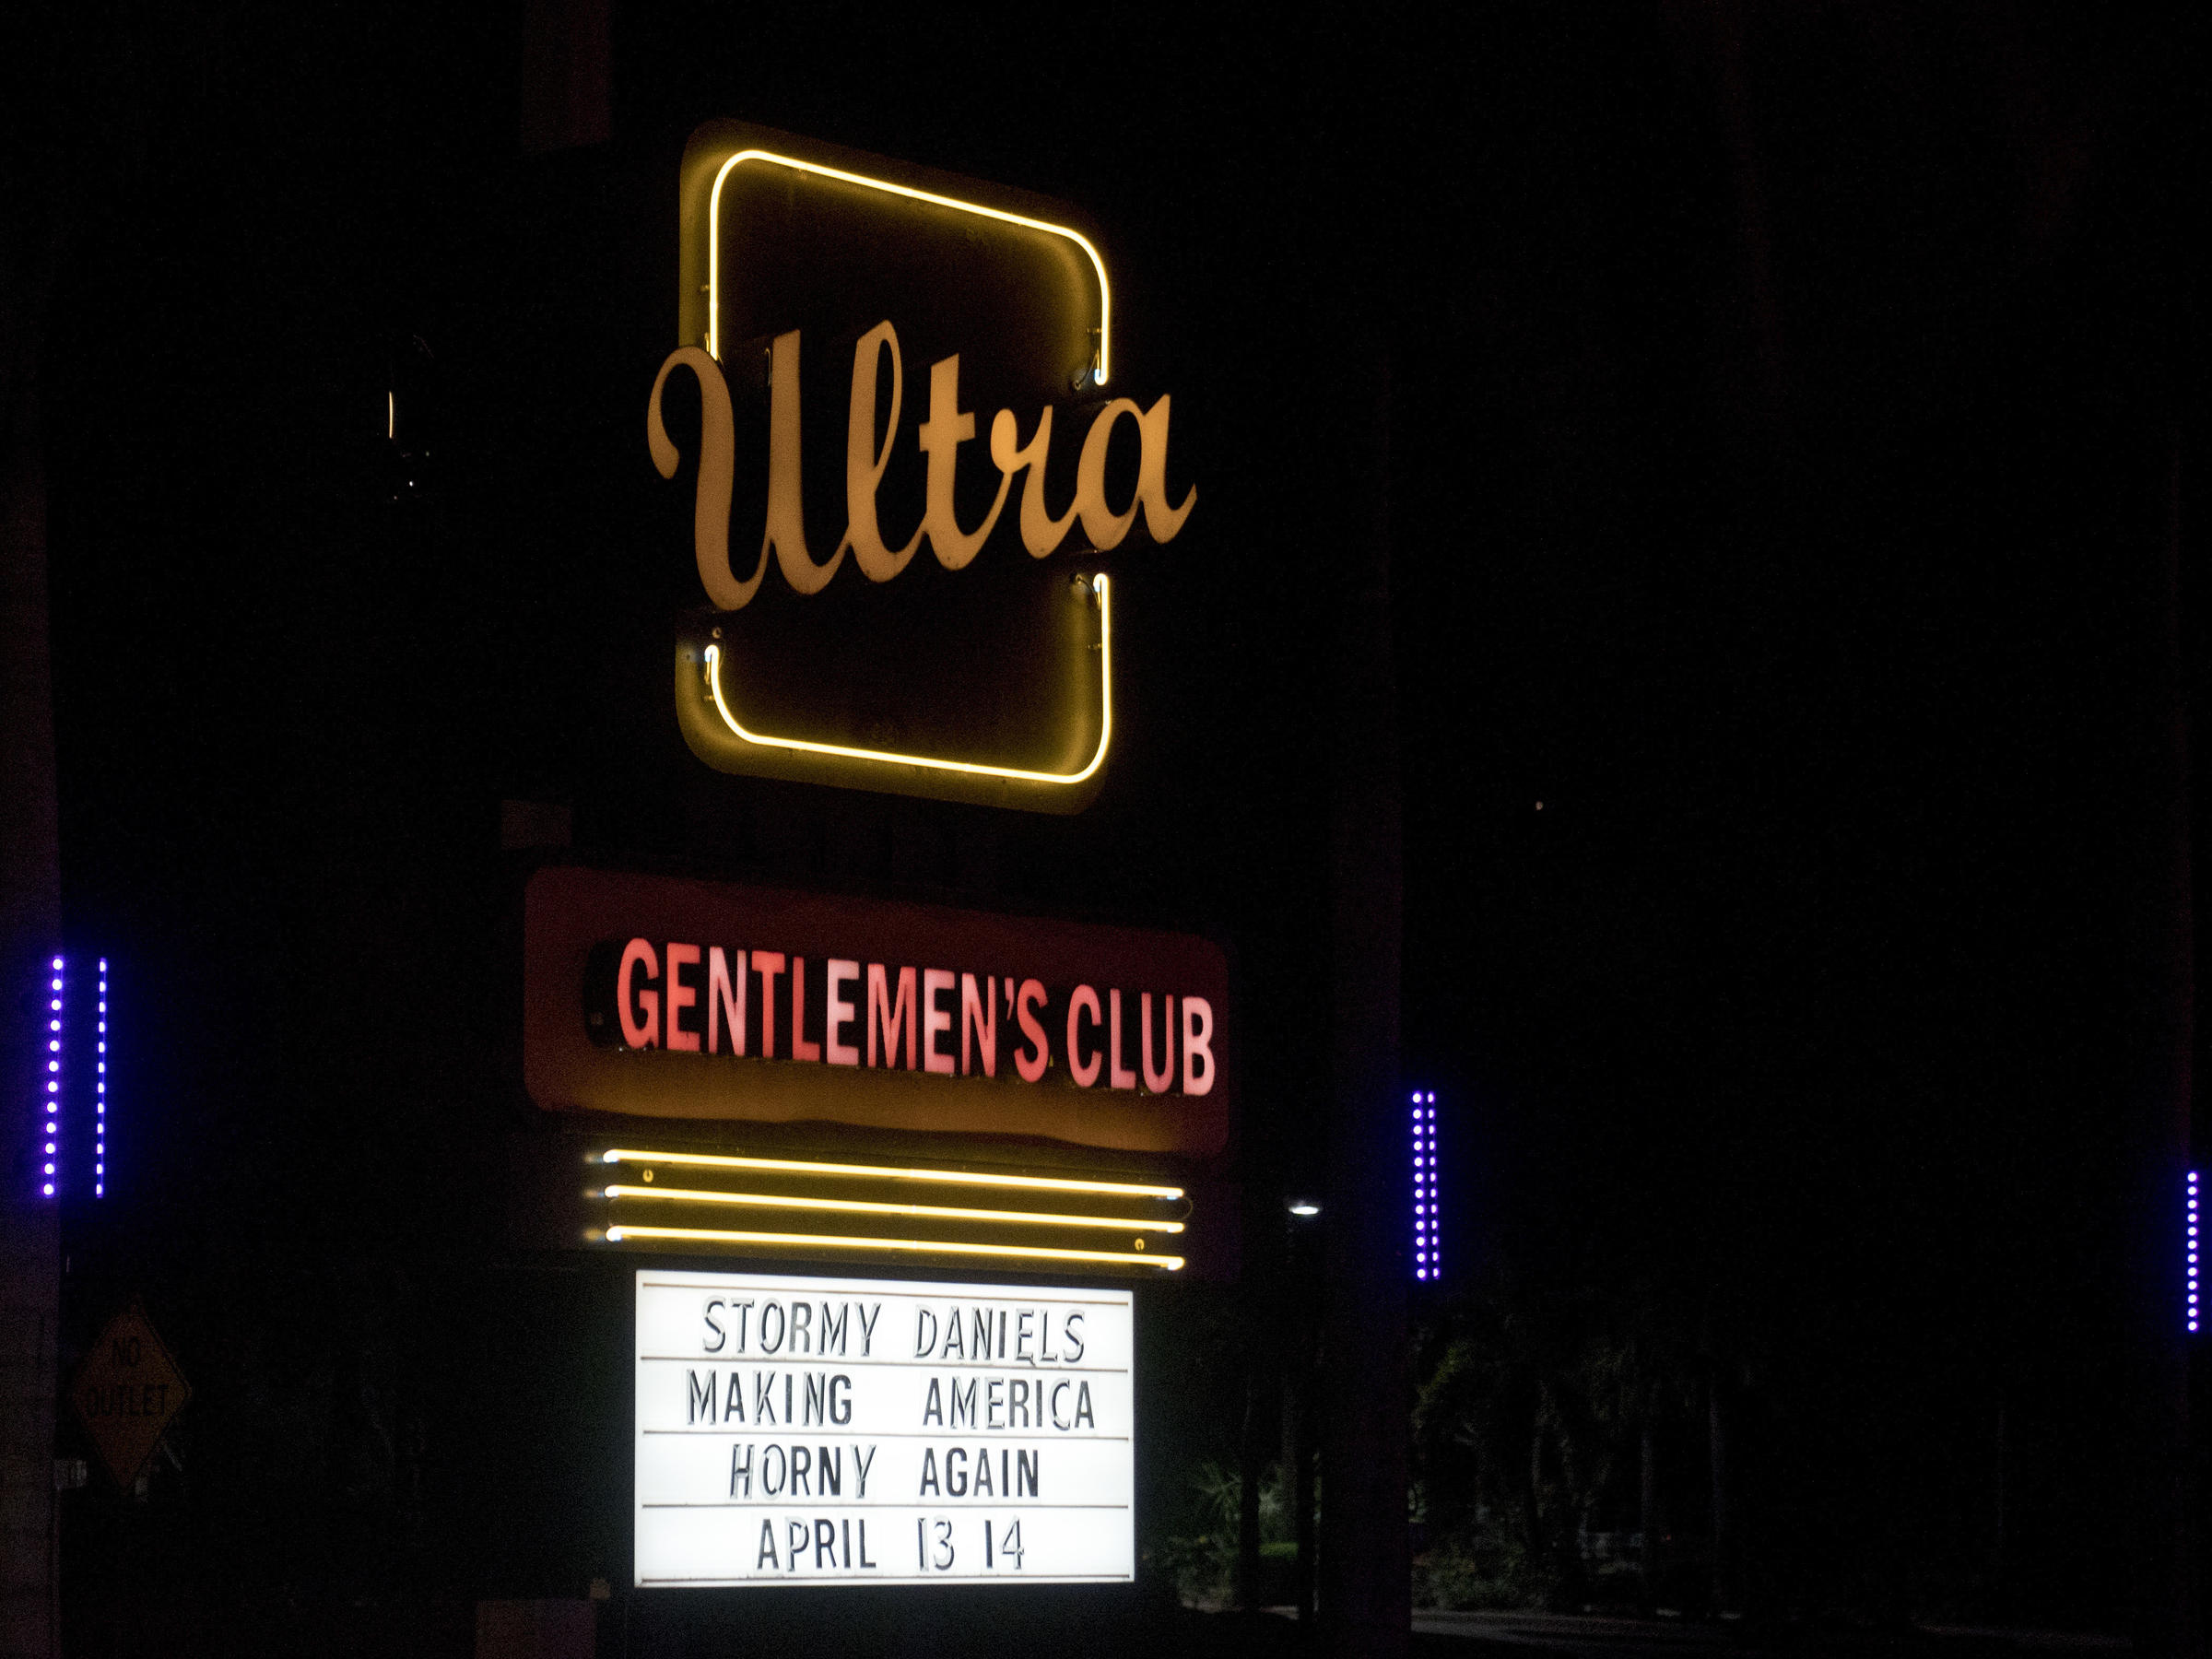 A sign for a Gentlemen's Club across the street from Trump International Golf Club reads